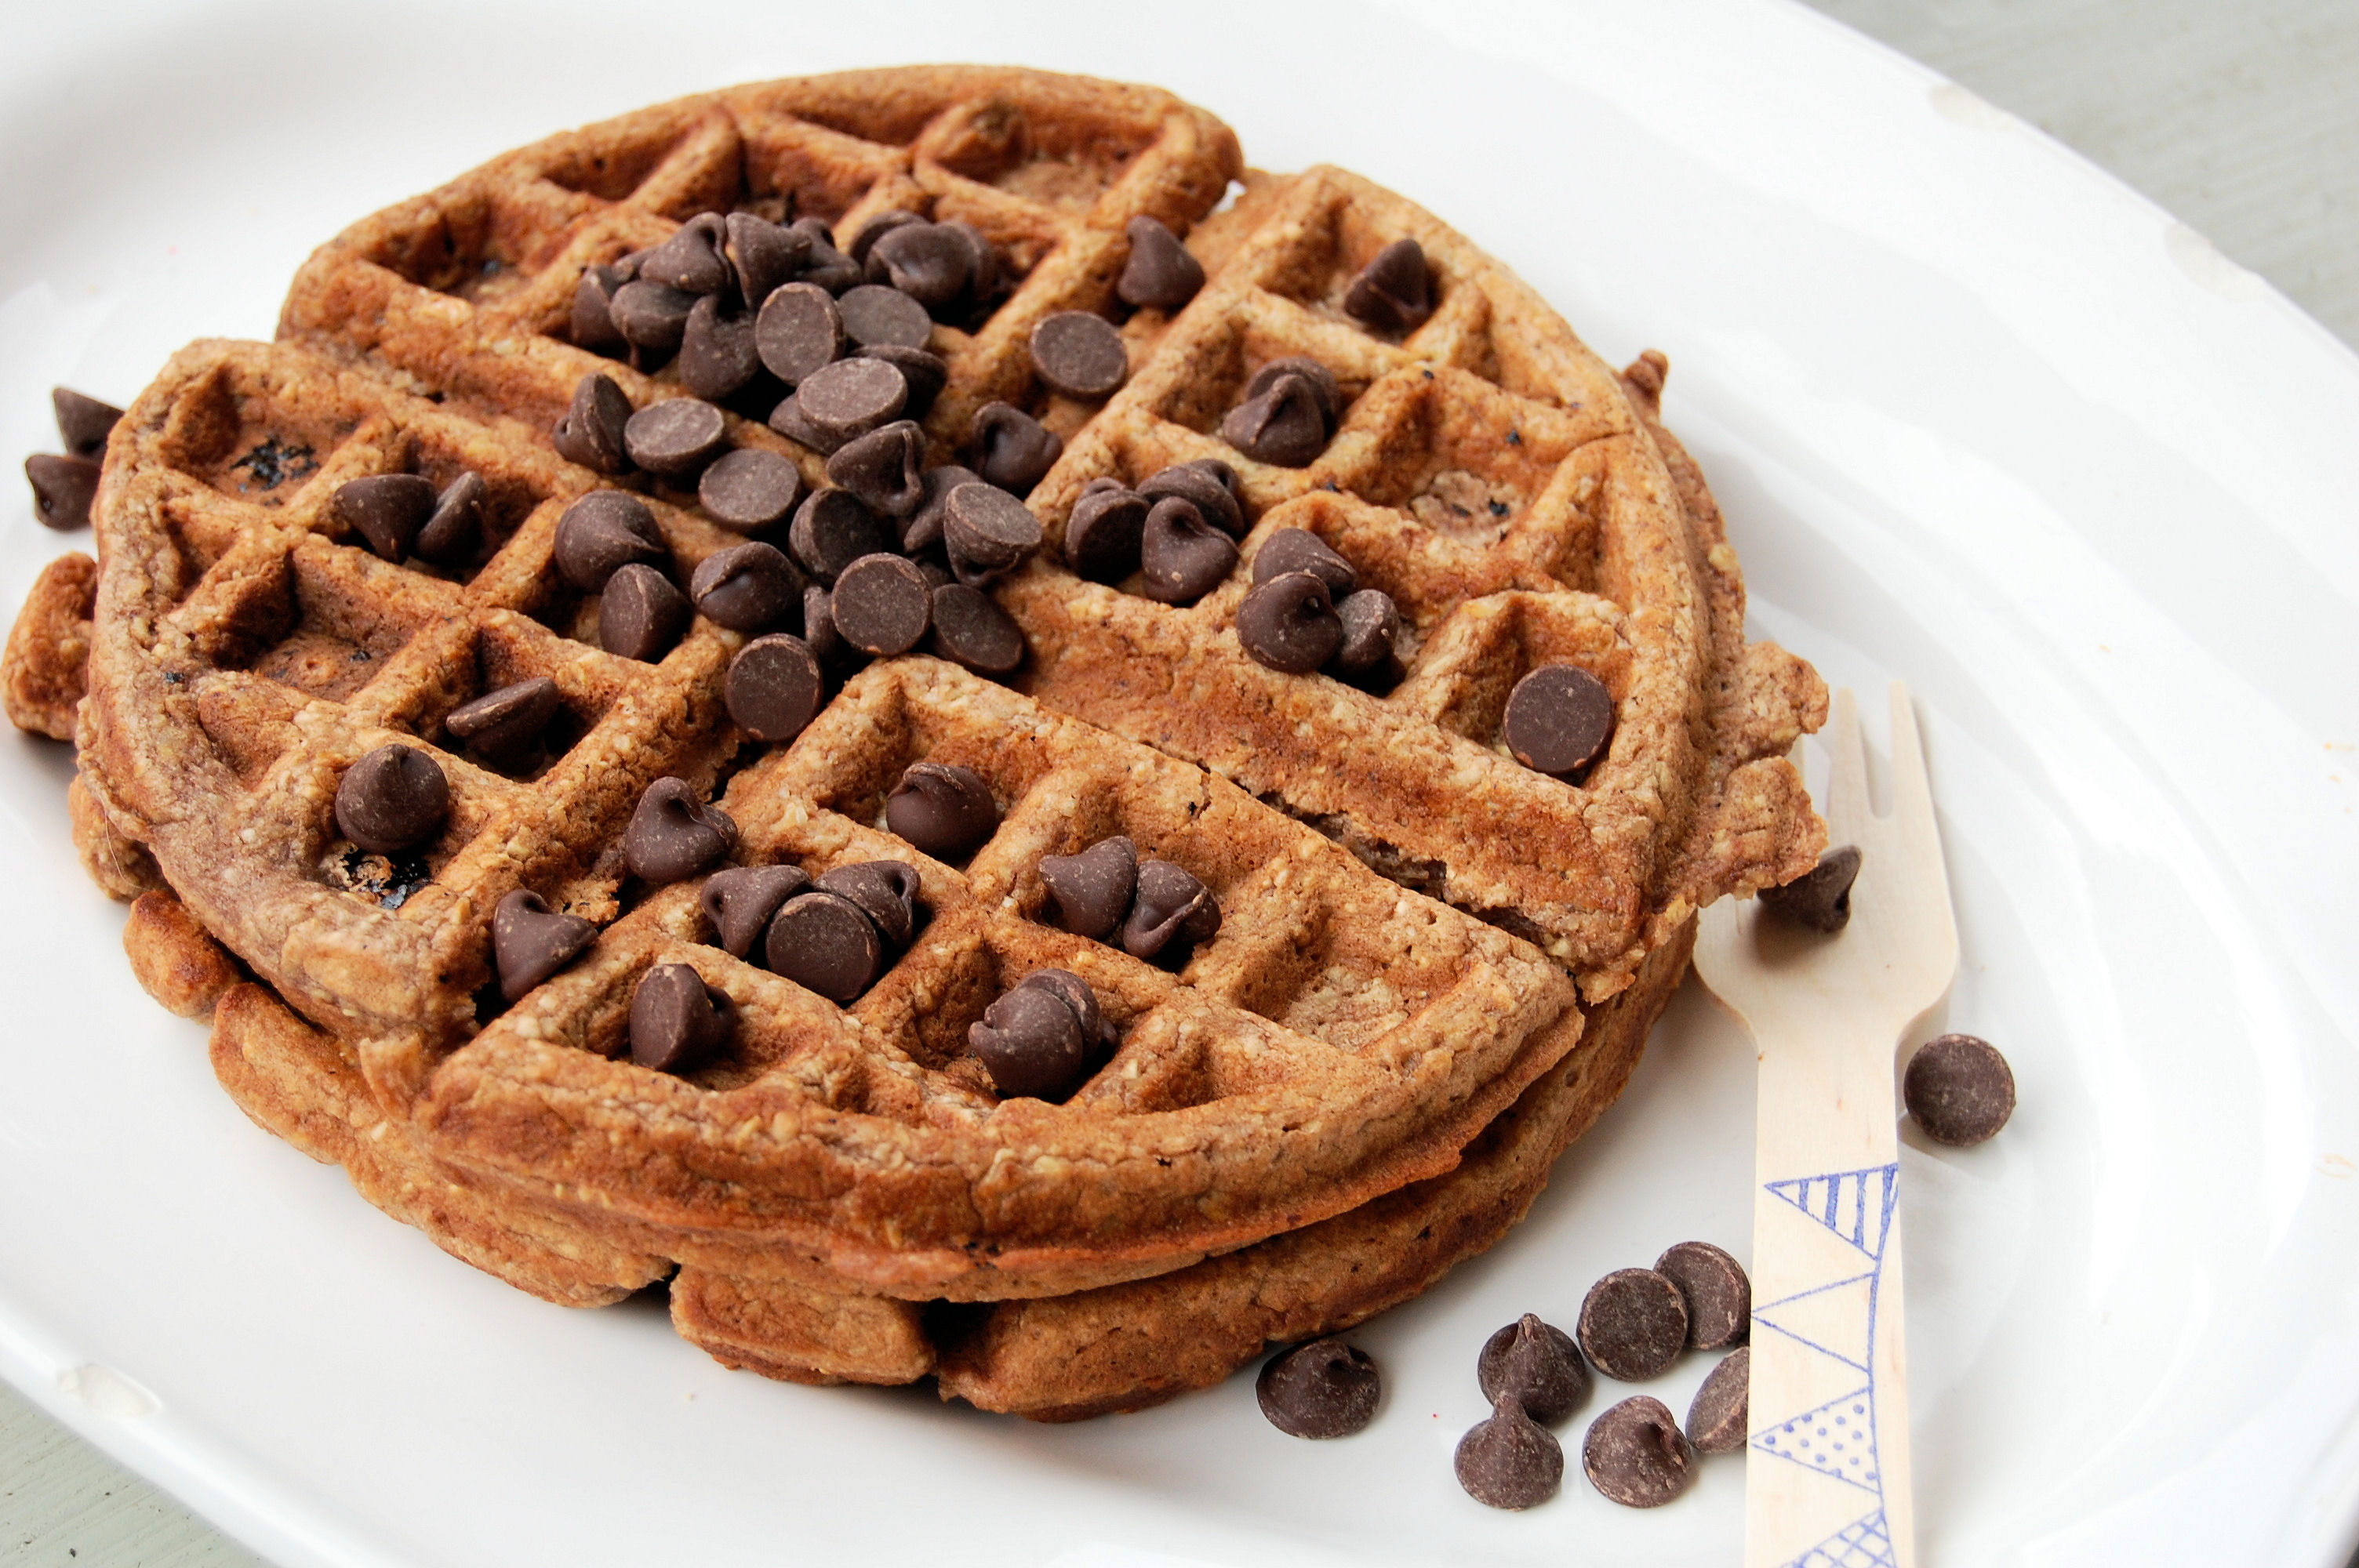 ... butterm i lk and chocolate ch i p waffles waffles waffles egg waffles